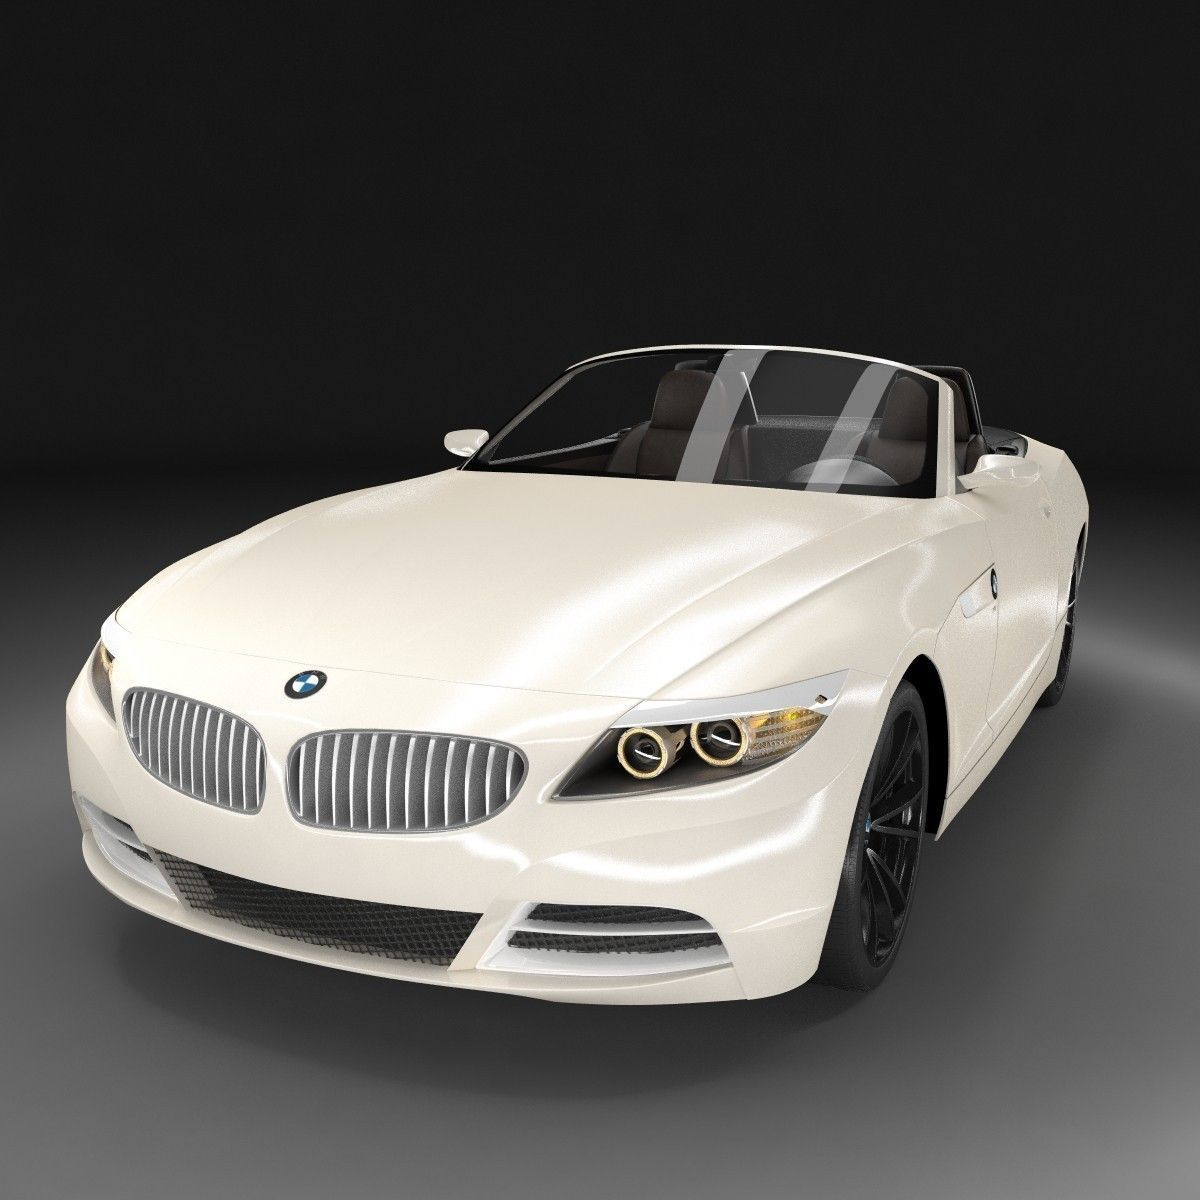 2009 Bmw Z4 Convertible: BMW Z4 2009 3D Model .max .obj